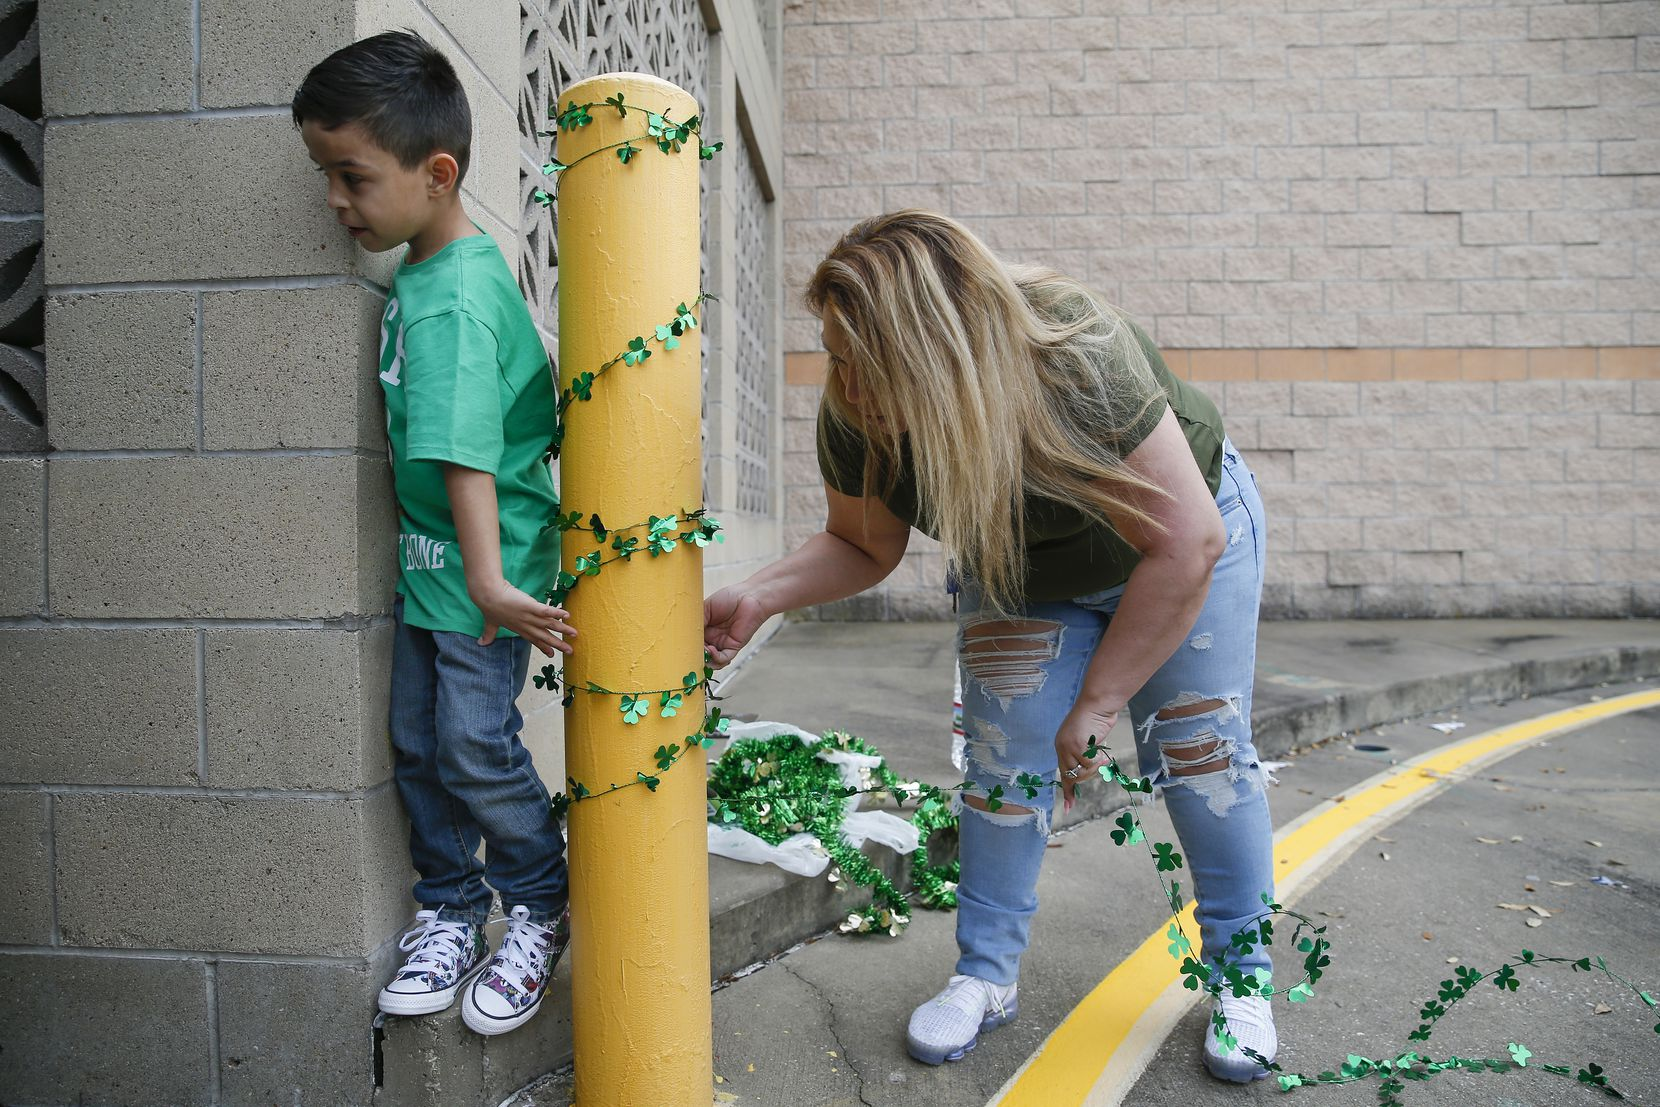 With her son Joel Guerrero's, 6, left, help Veronica Gutierrez, right, mother of Destiny Rangel who was best friends with Emily Bingabing, who was killed outside a Walmart in Far North Dallas in late January, decorates a memorial near the location of the homicide on Saturday, Feb. 22, 2020 in Dallas. Rangel says they plan to continue decorating the location once a month. (Ryan Michalesko/The Dallas Morning News)